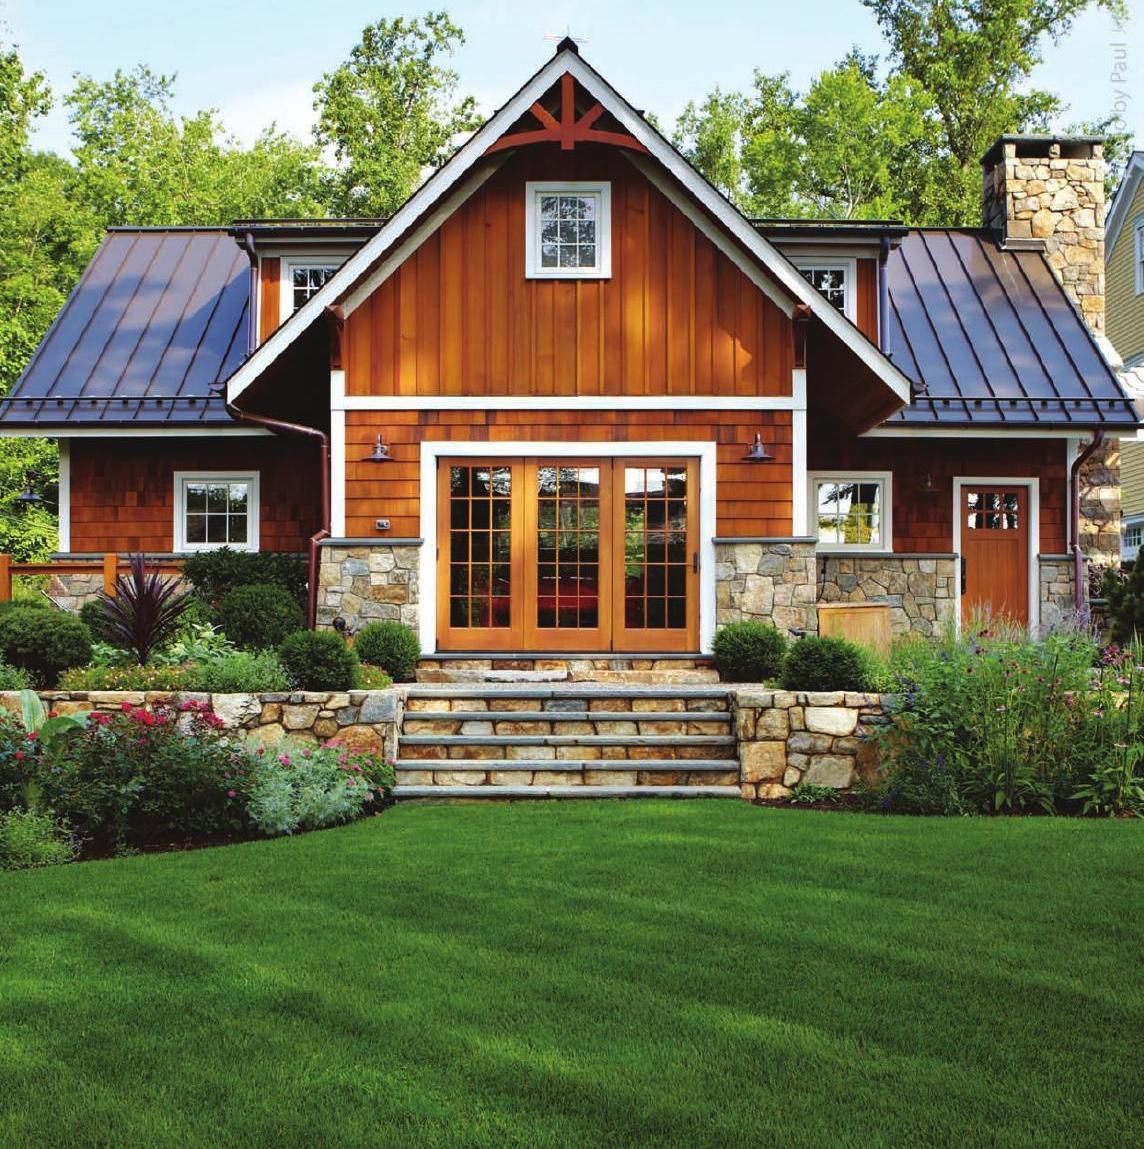 Modern House Red Roof: #ClippedOnIssuu From East Coast Home Design March / April